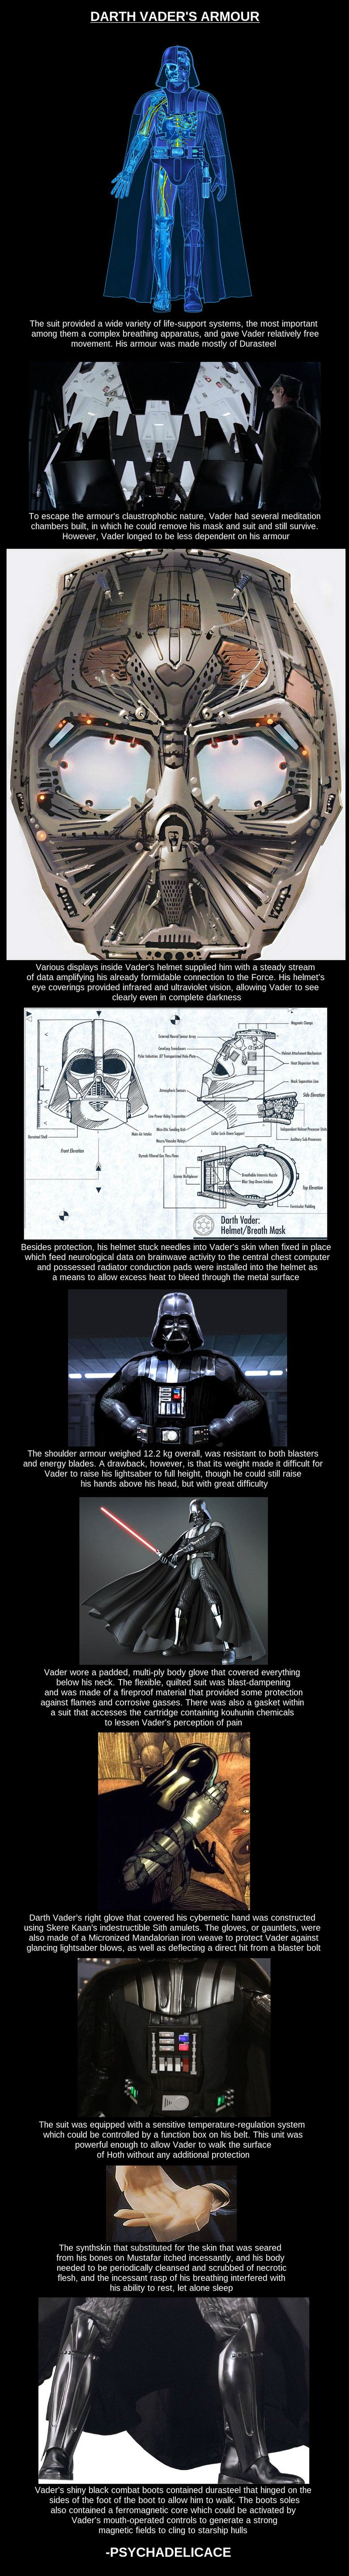 """Darth Vader's Armor.  Fun fact: Vader's boots actually pre-date his helmet - Lucas created a breath mask for his villain as he was originally walking on the outside of Leia's ship to enter it. The whole """"more machine than man"""" idea evolved out of that concept."""